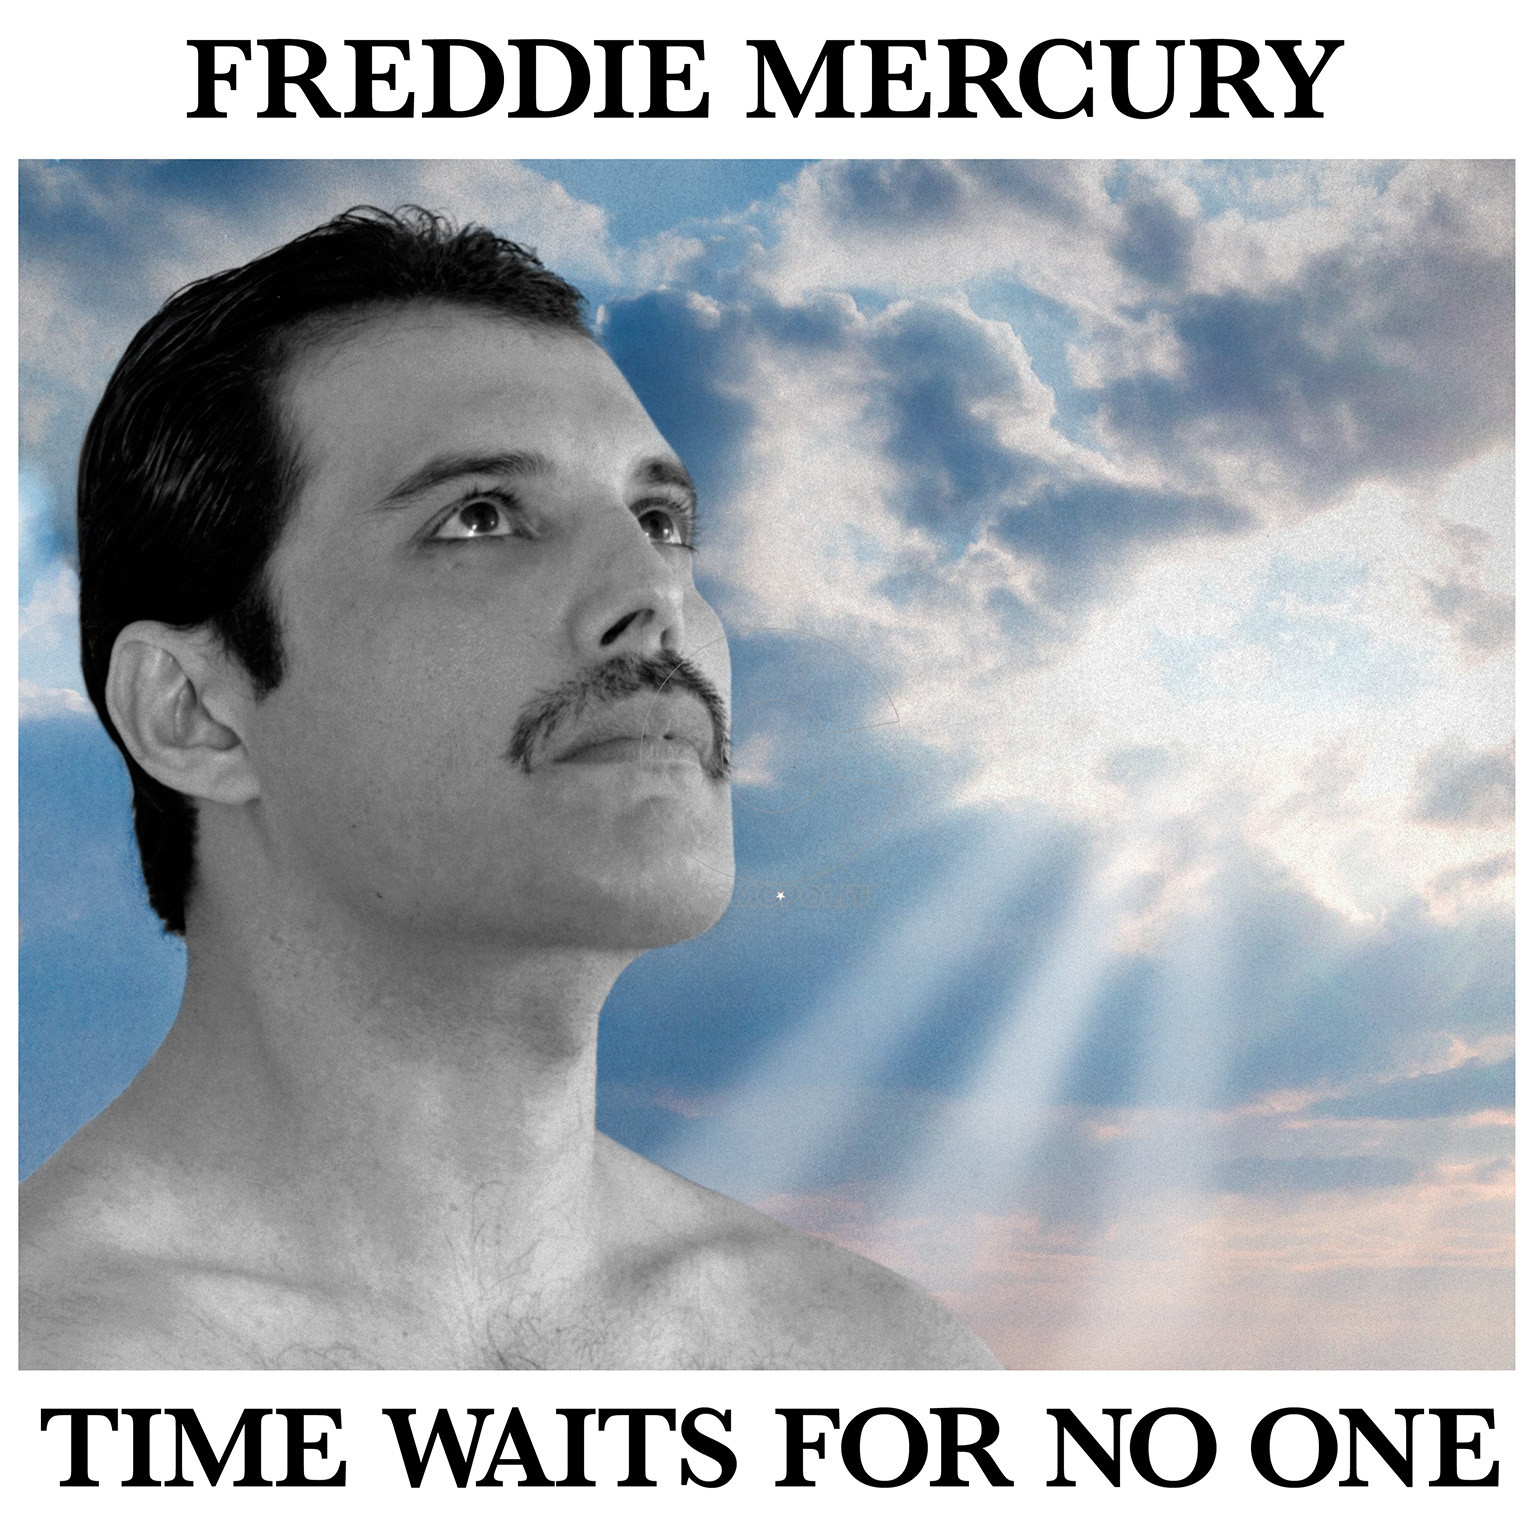 Freddie Mercury - Time Waits For No One - Cover Art